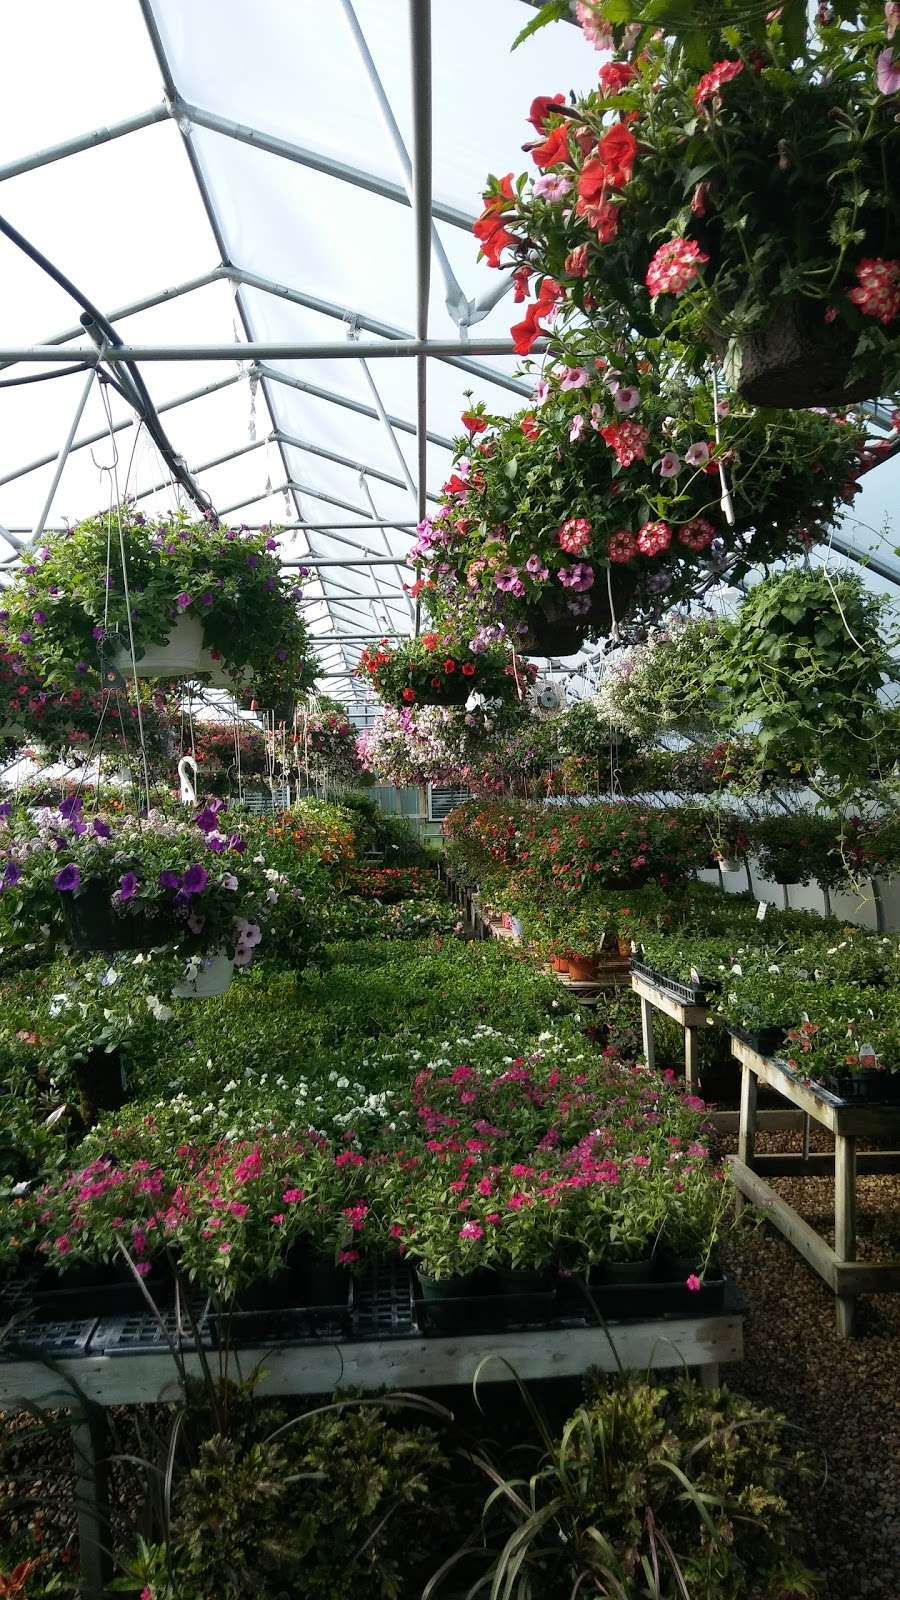 Hahns Greenhouse - store  | Photo 3 of 6 | Address: 2132 N Sage Rd, Walkerton, IN 46574, USA | Phone: (574) 586-3097